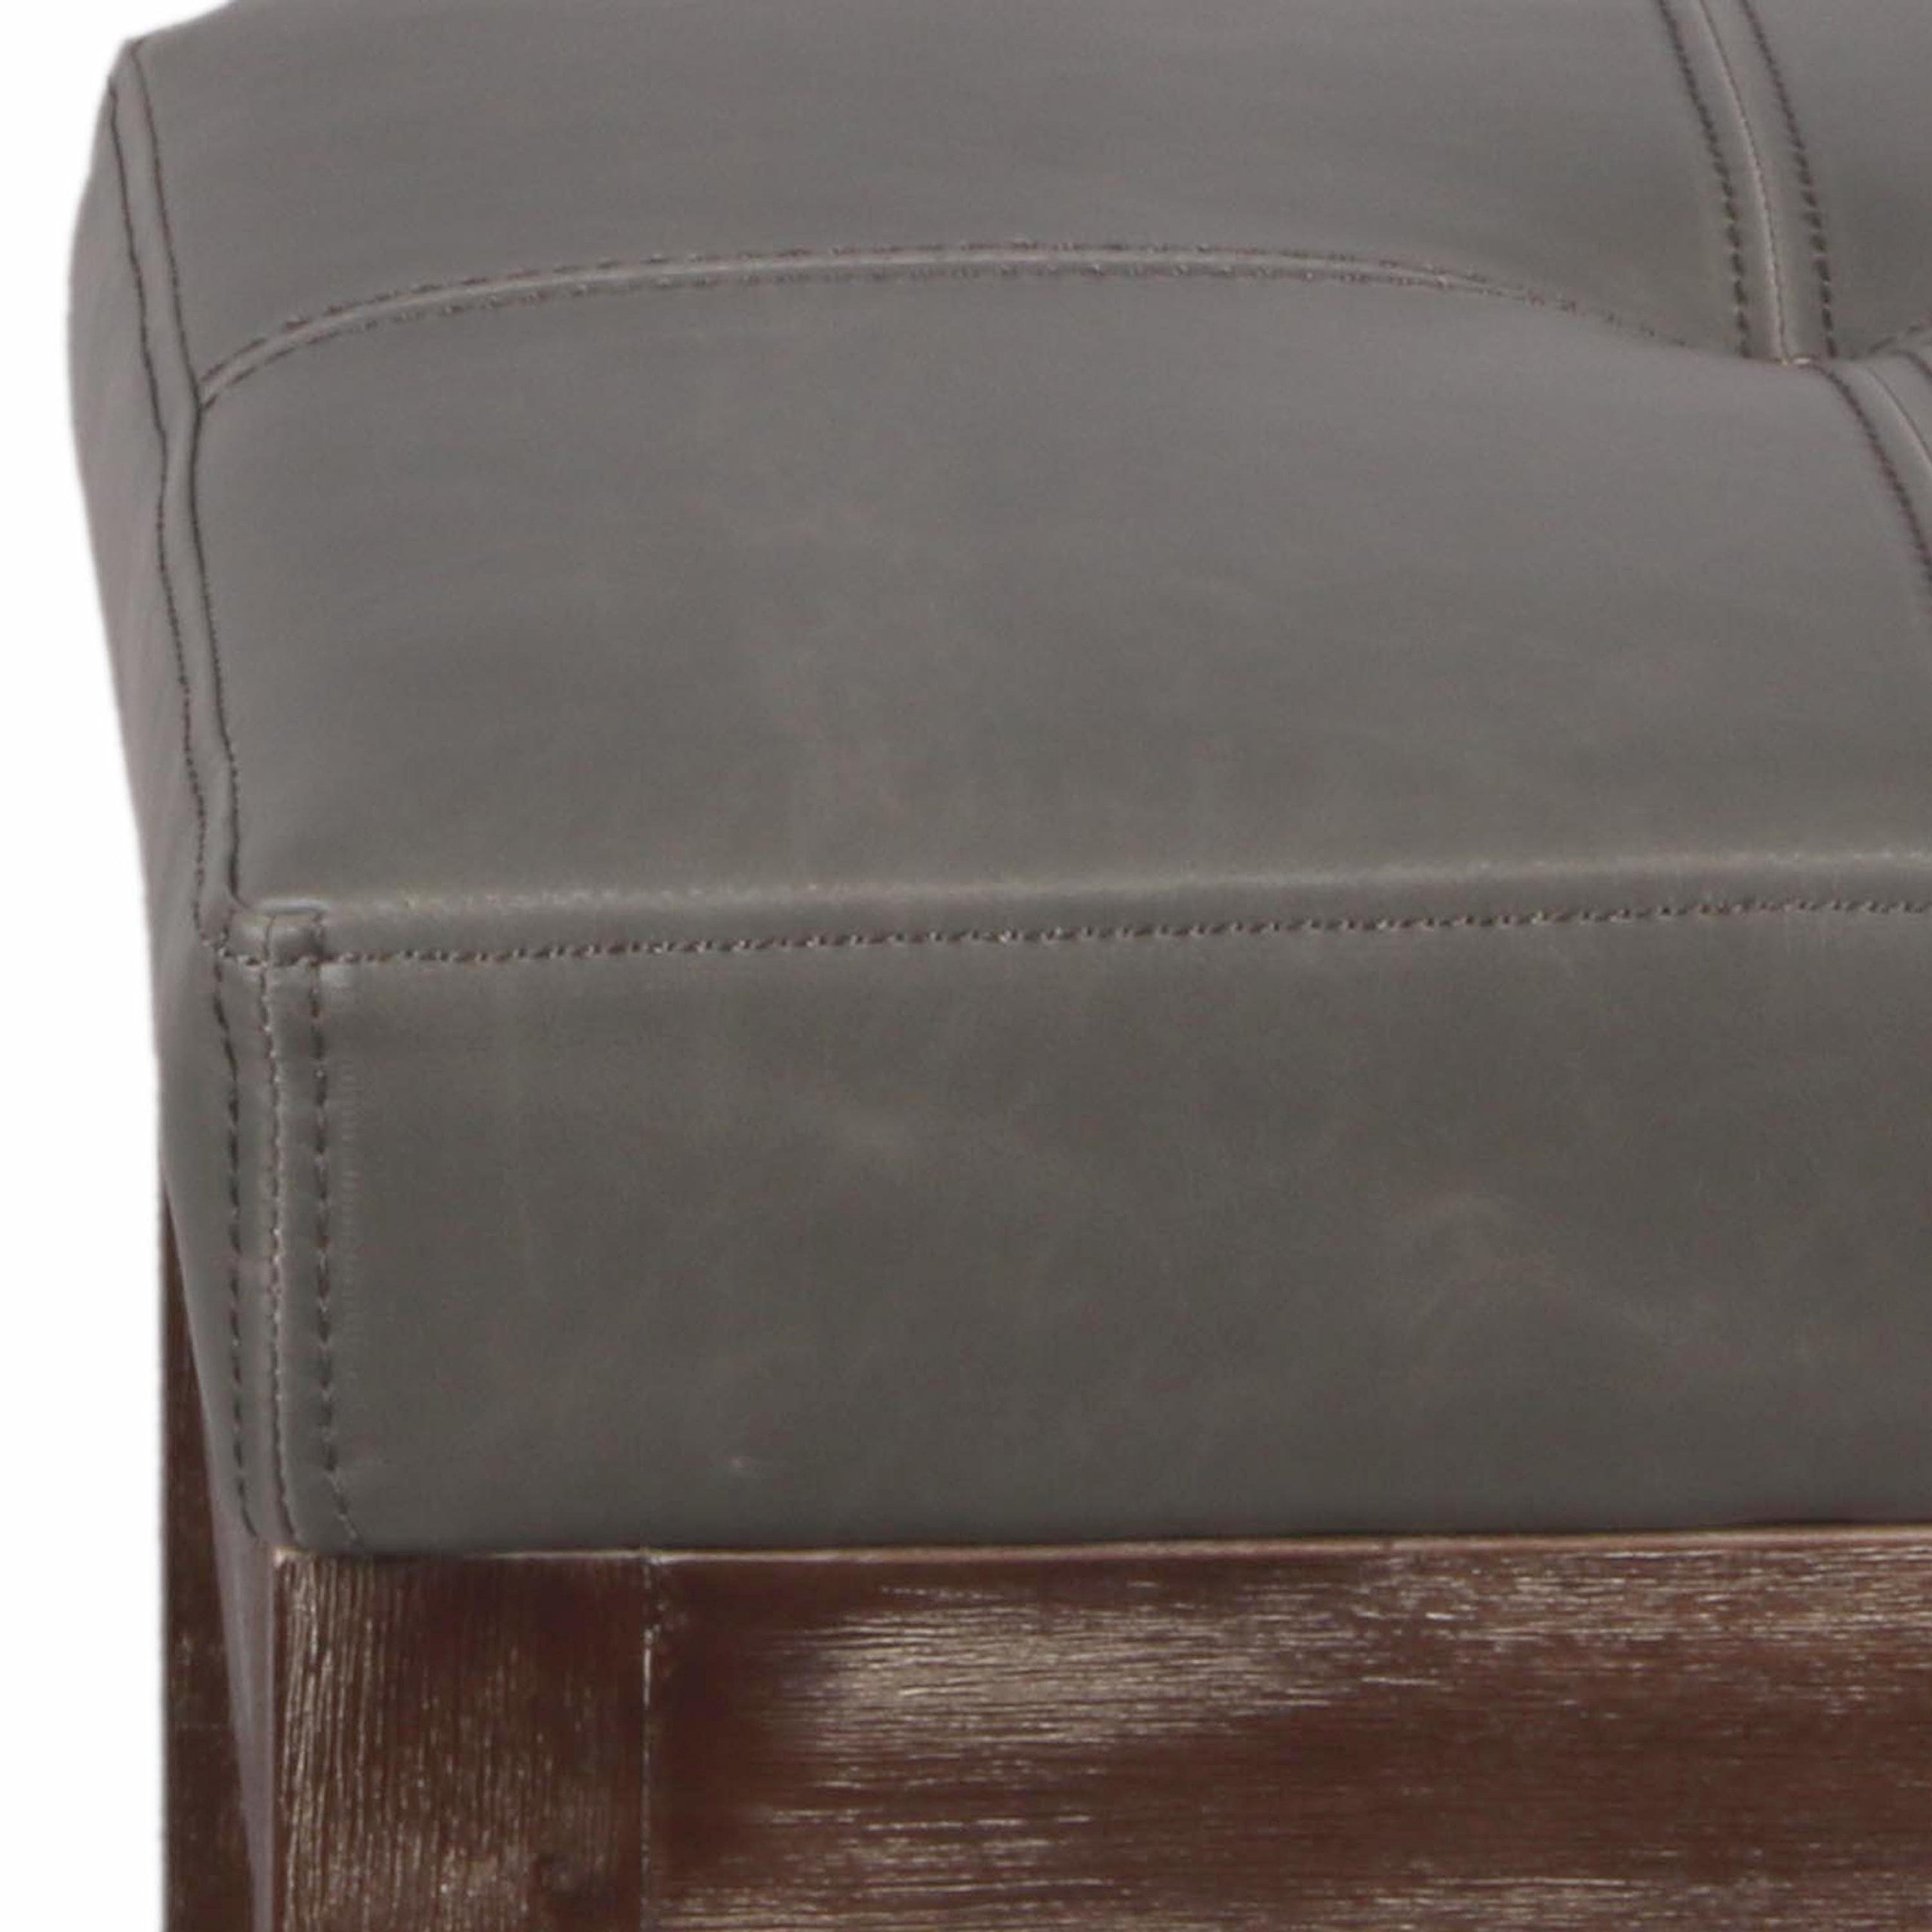 New Pacific Direct Valencia 27'' Bonded Leather Counter Stool, Drift Wood Legs, Vintage Gray by New Pacific Direct (Image #4)